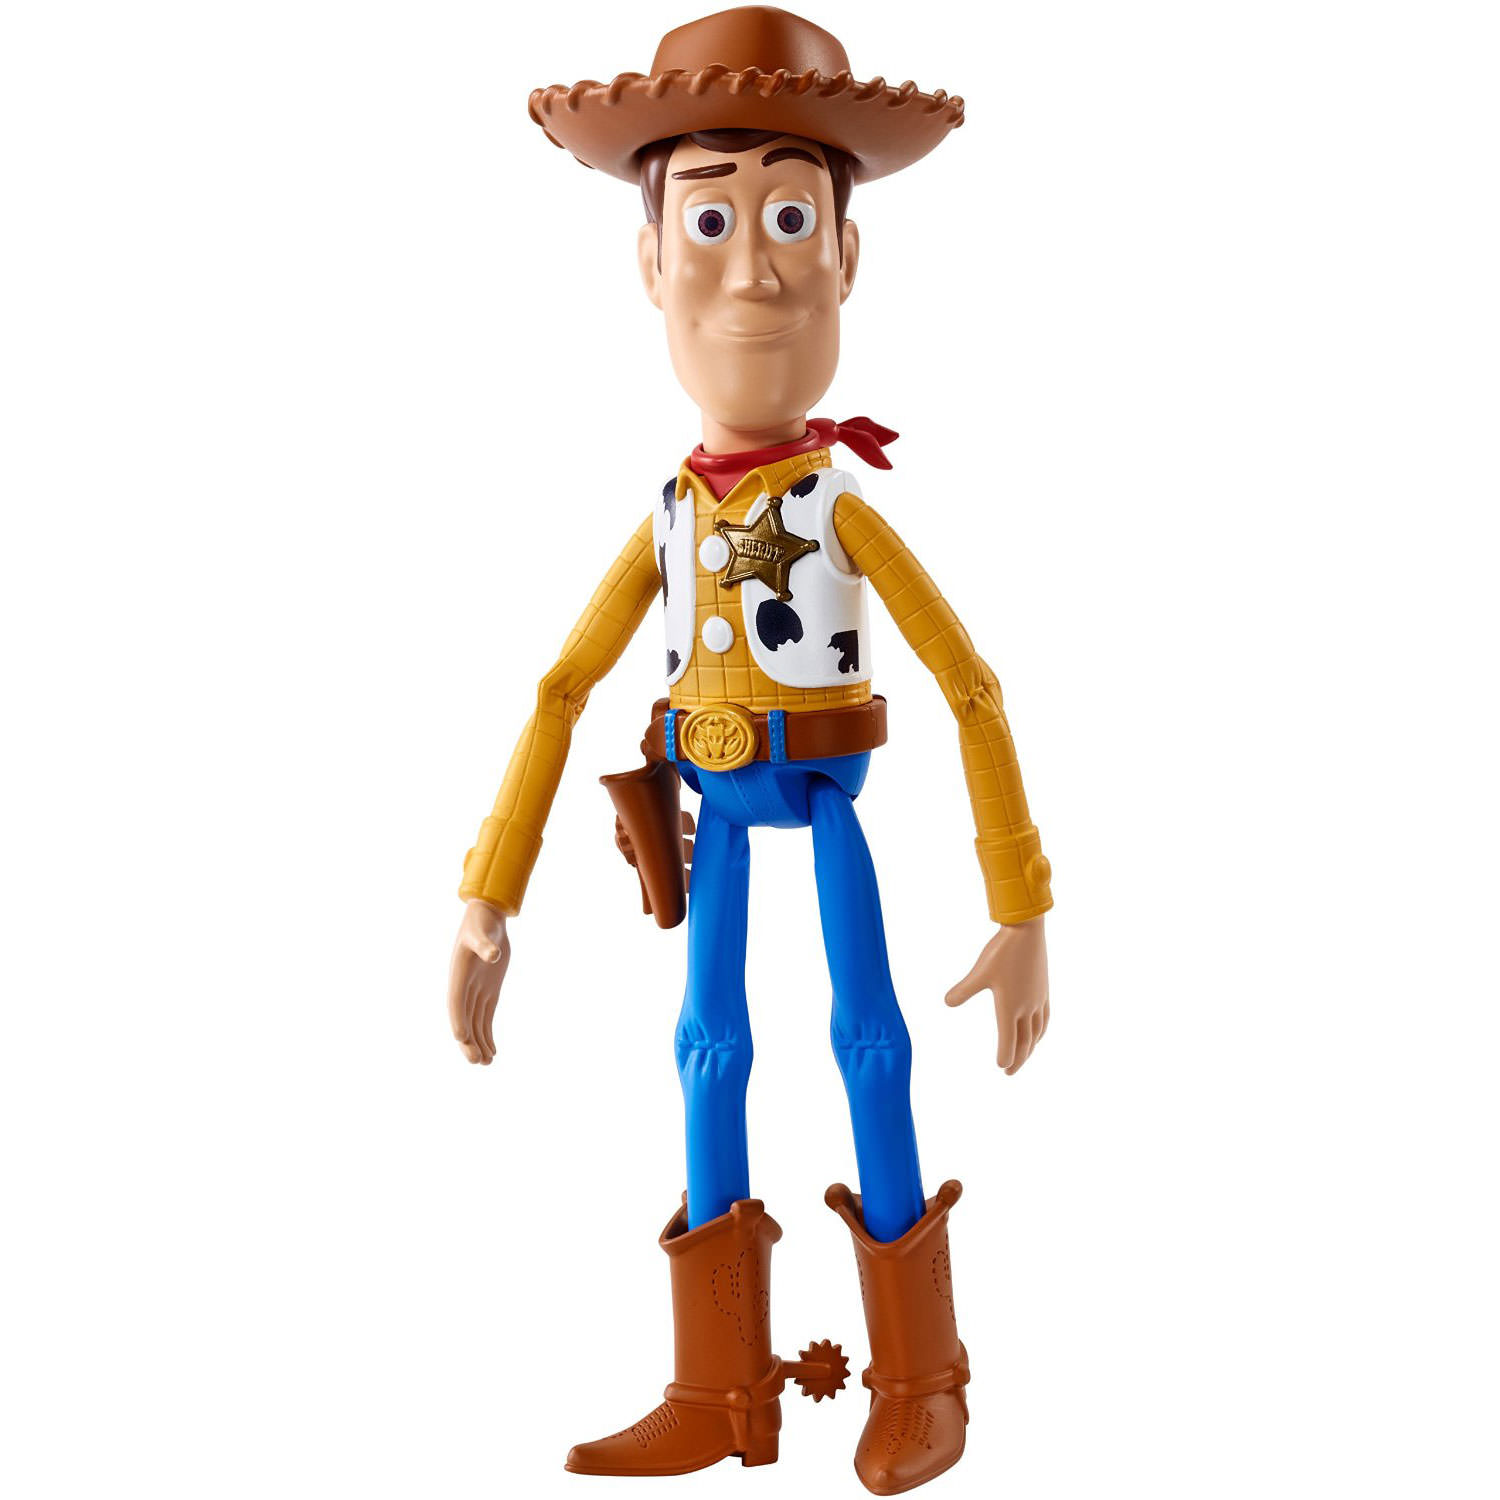 Toy Story Figures : Disney pixar toy story quot talking figure woody at hobby